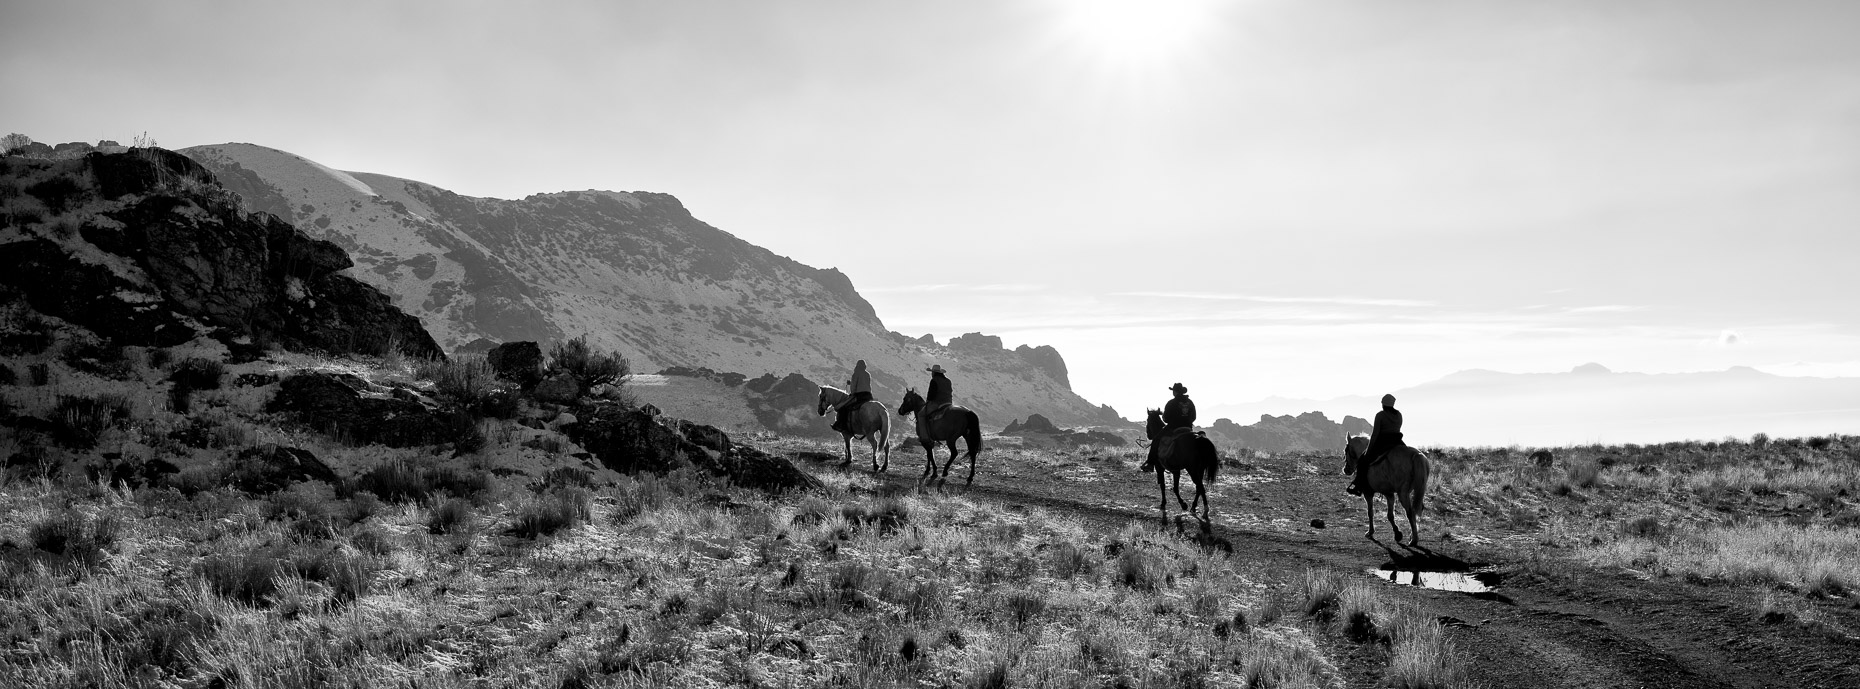 Horsemen on Antelope Island